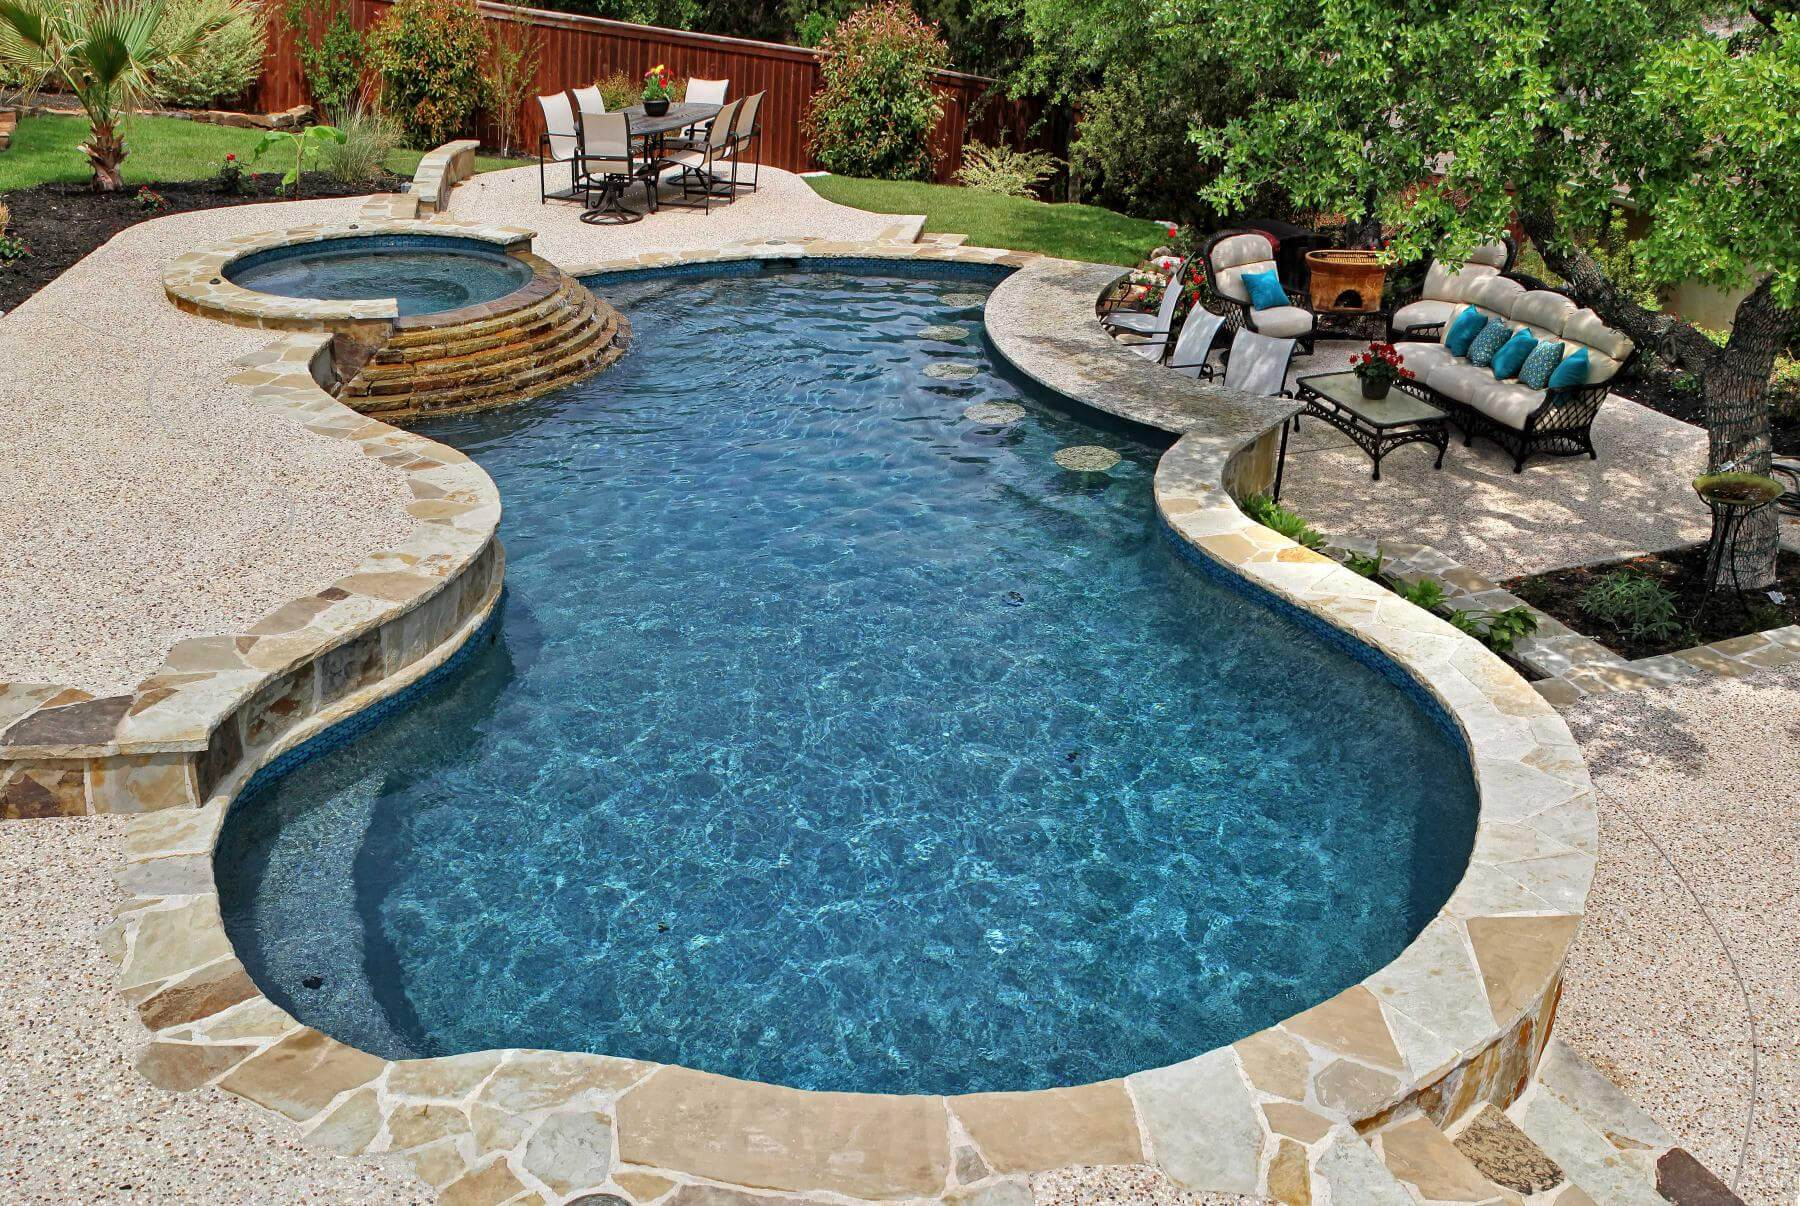 Summer 2015 pool trends and pool design ideas keith zars for Best pool design 2015